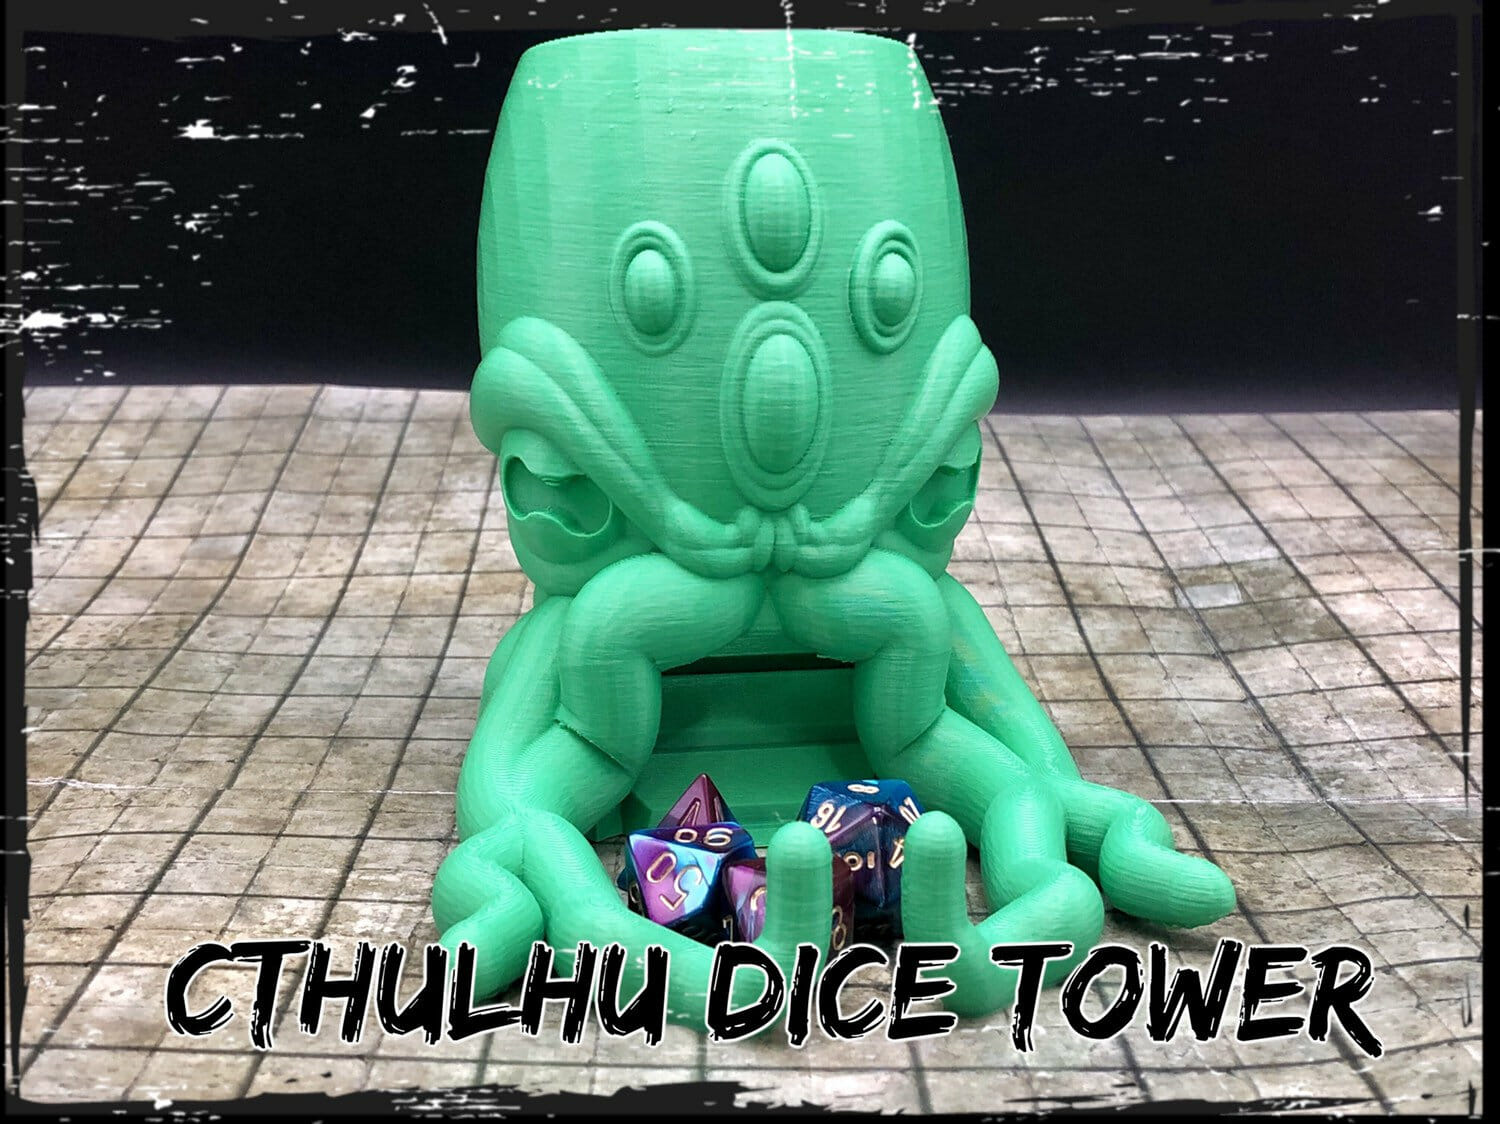 Cthulhu dice tower